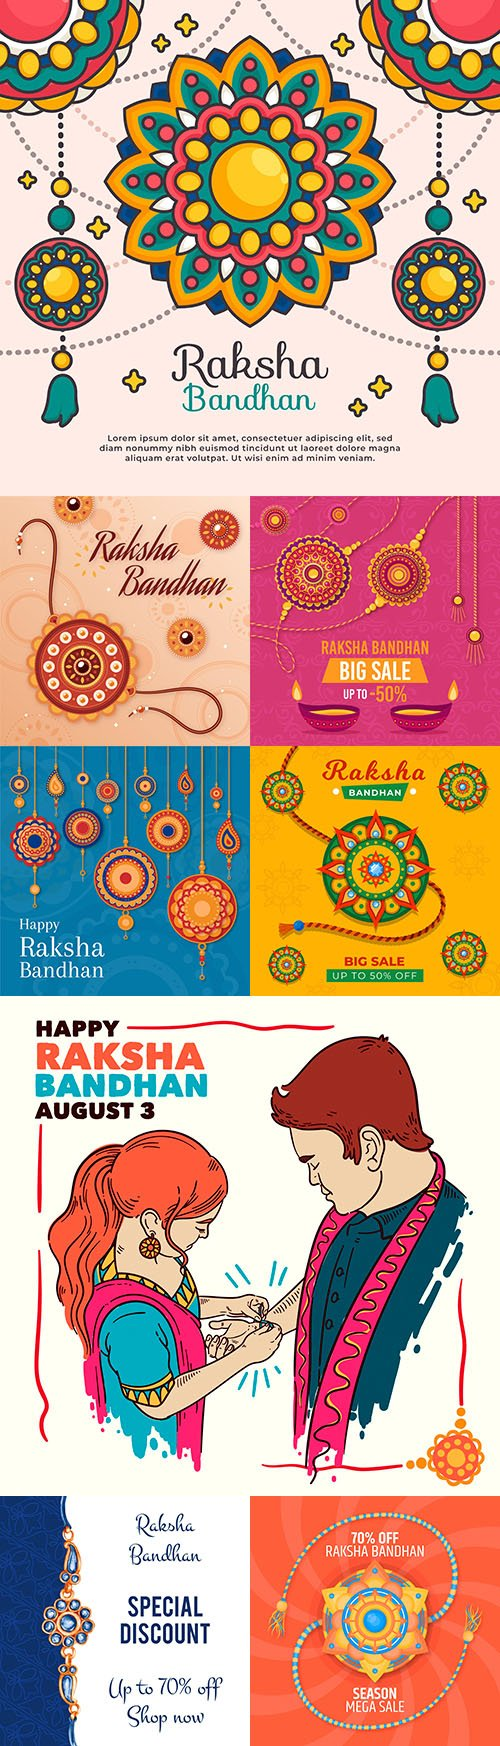 Raksha Bandhan Indian Holiday Flat Design Illustration